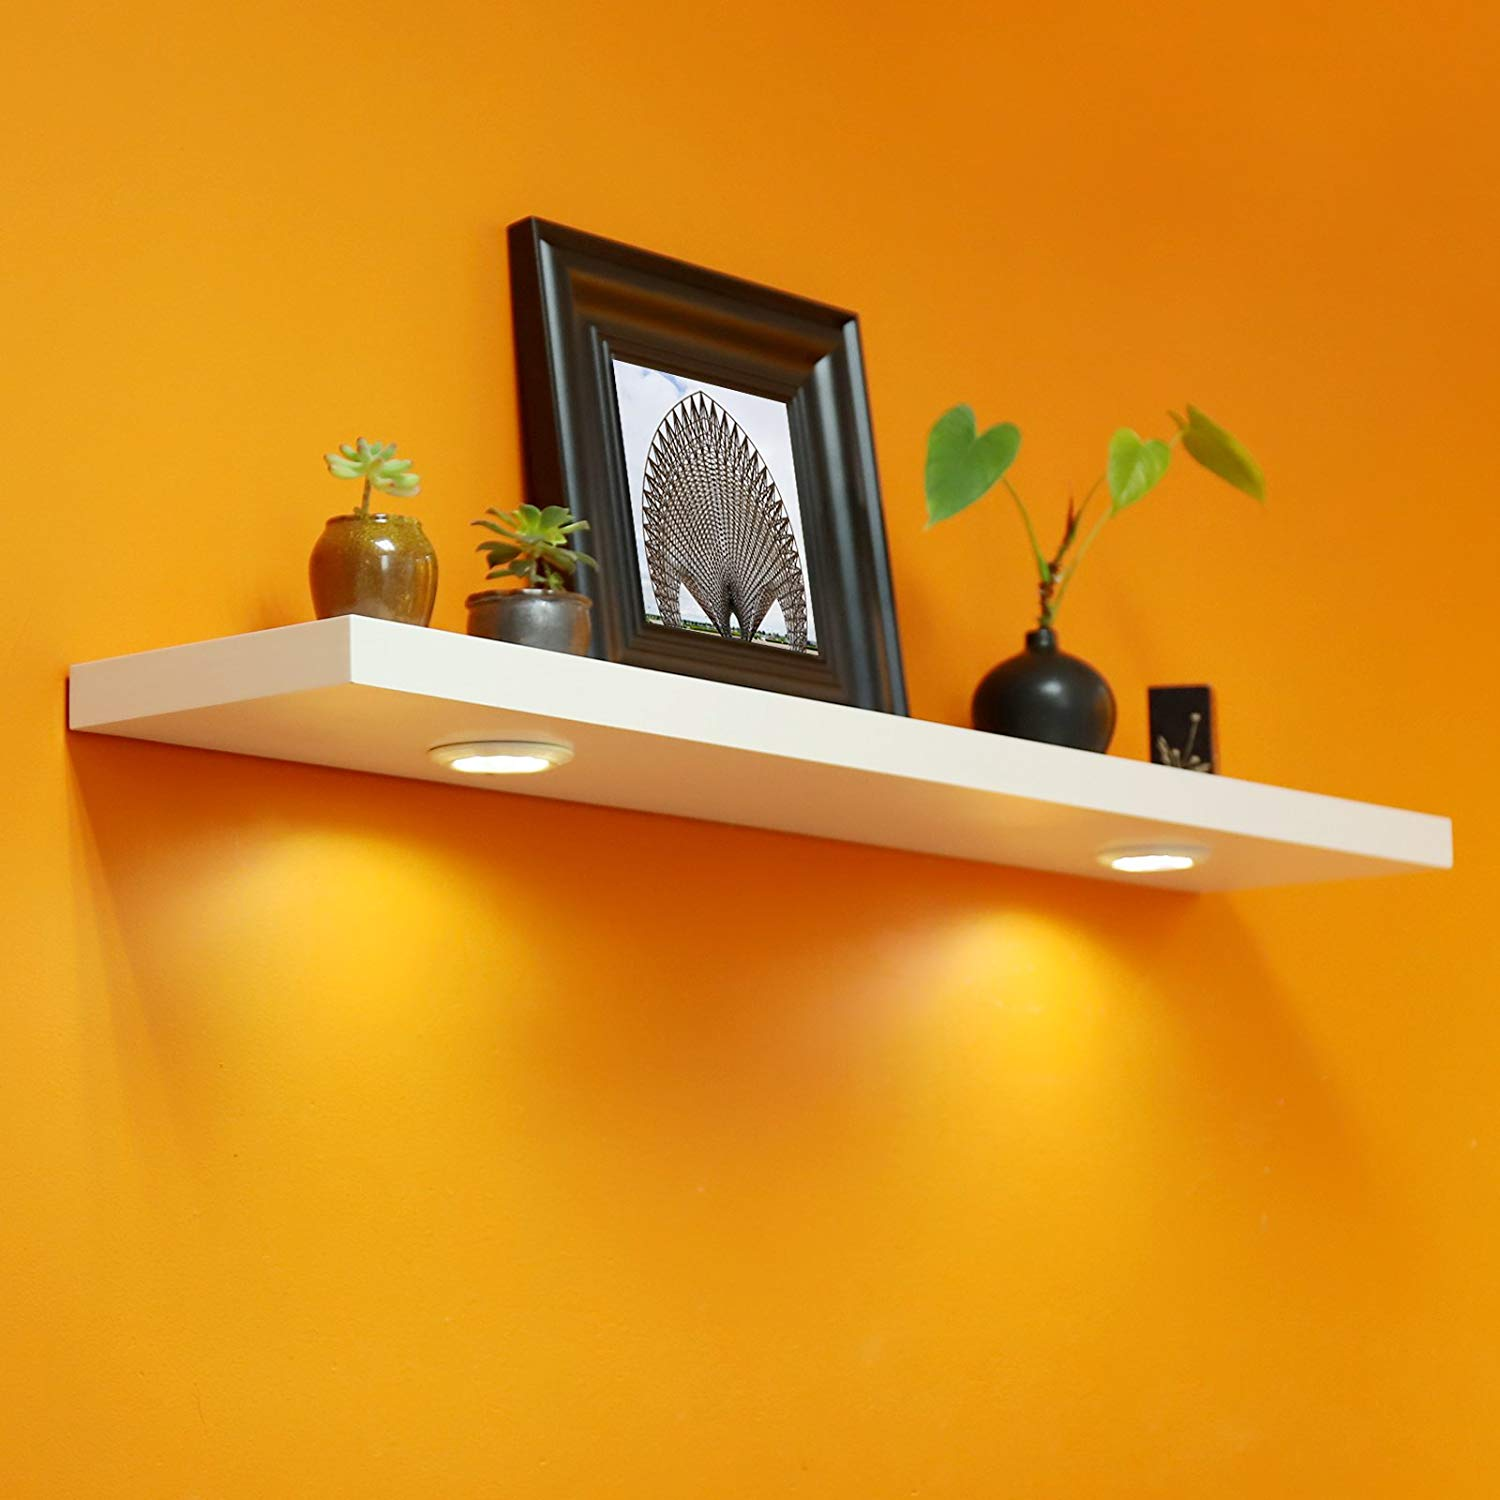 welland inch floating shelf with touch sensing wall lights battery powered led shelves for entrance living room bedroom kitchen and bathroom entry hall coat hooks cupboard storage